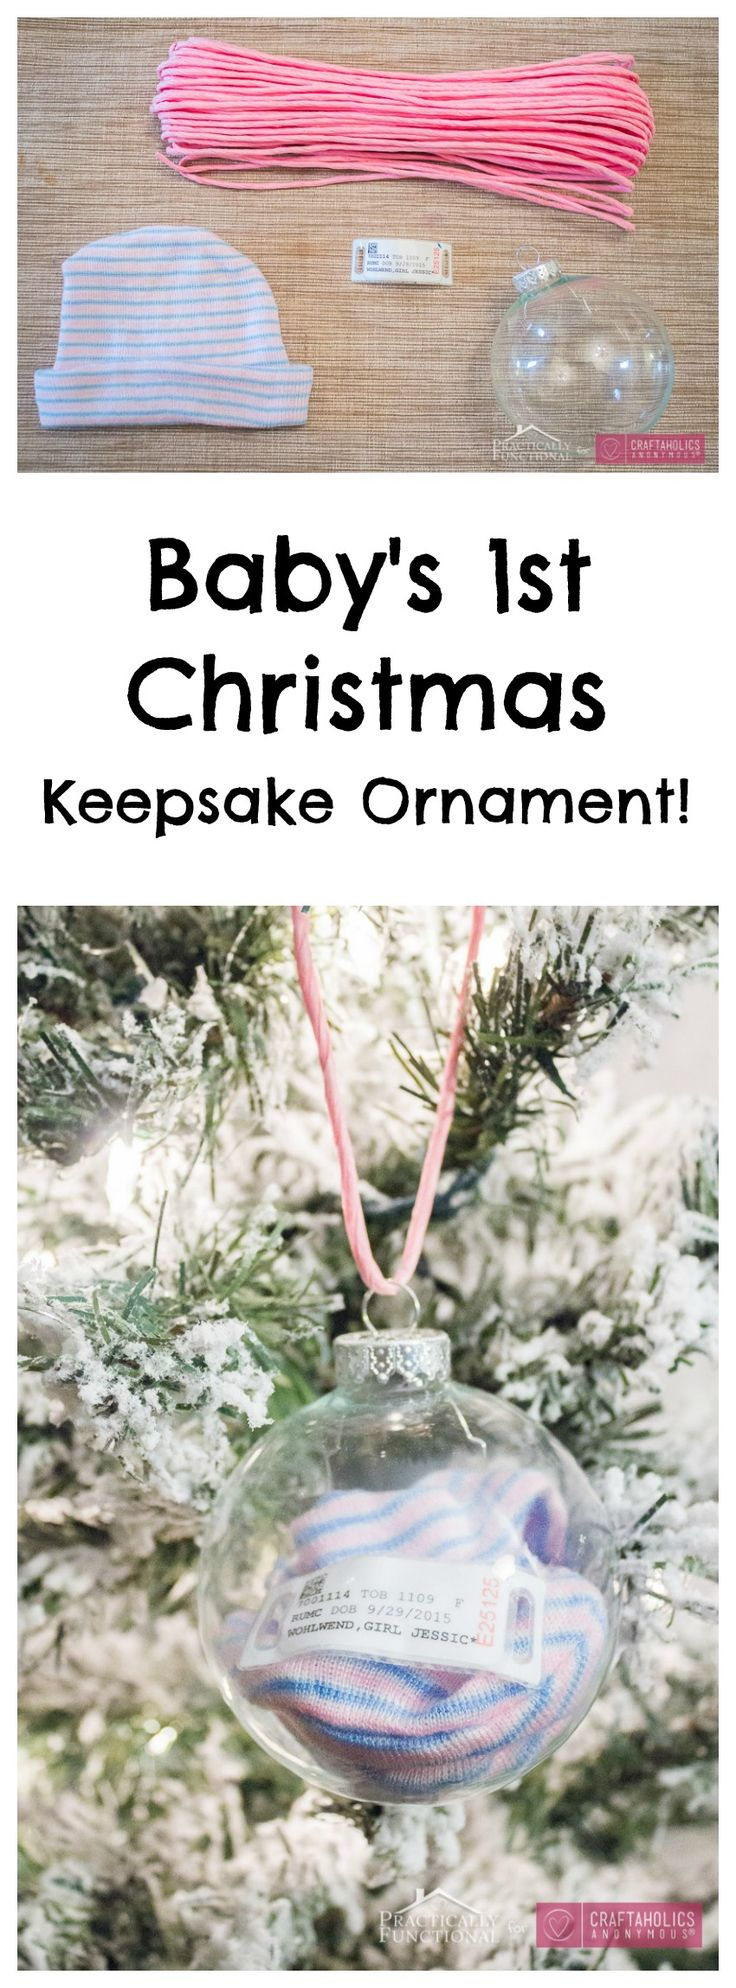 Babyu0027s First Christmas Ornament Tutorial. Such An Easy, Creative Keepsake  To.